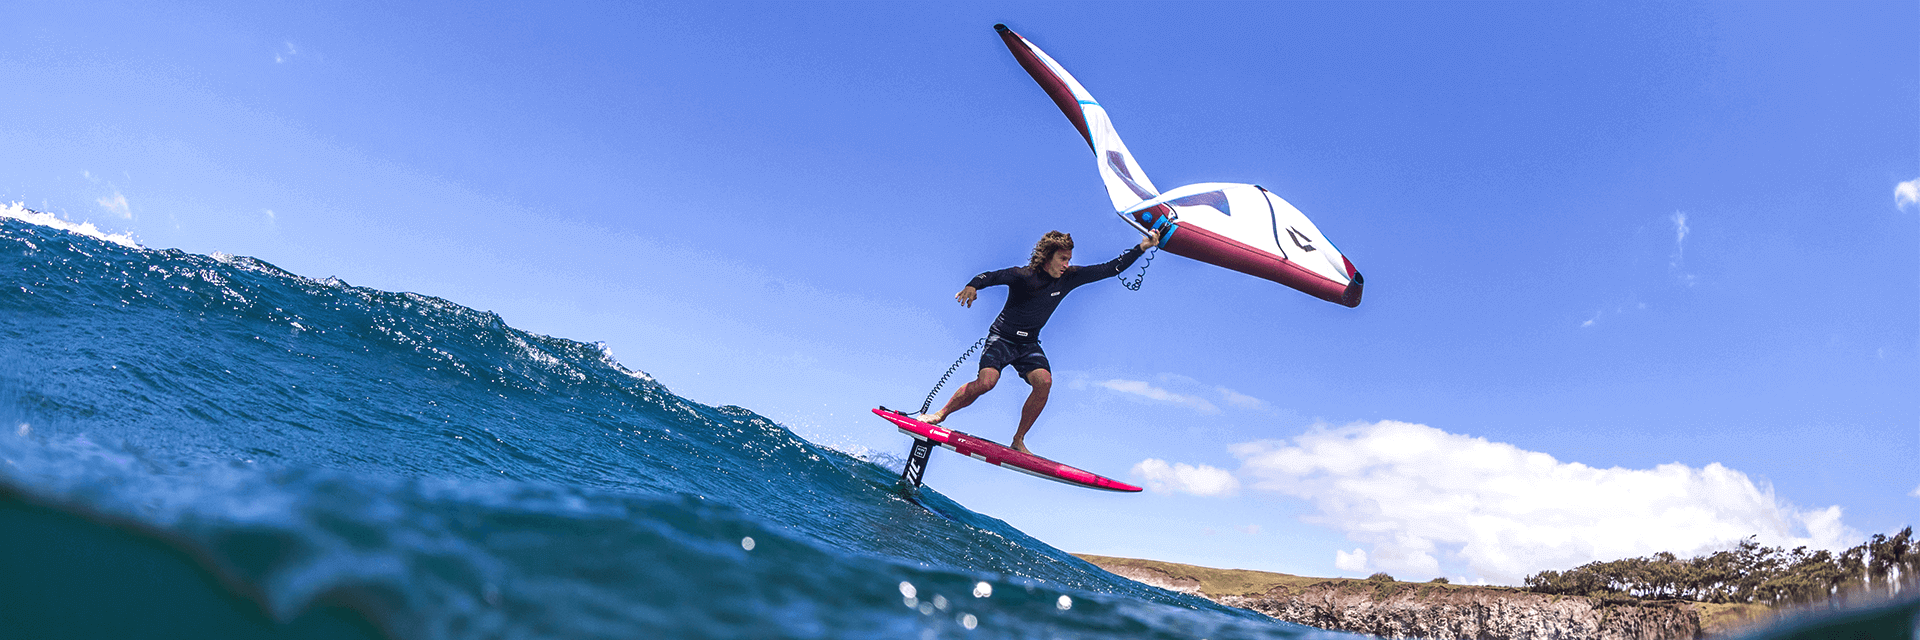 wingsurfing_wing_surfcamp_spain_andalusia